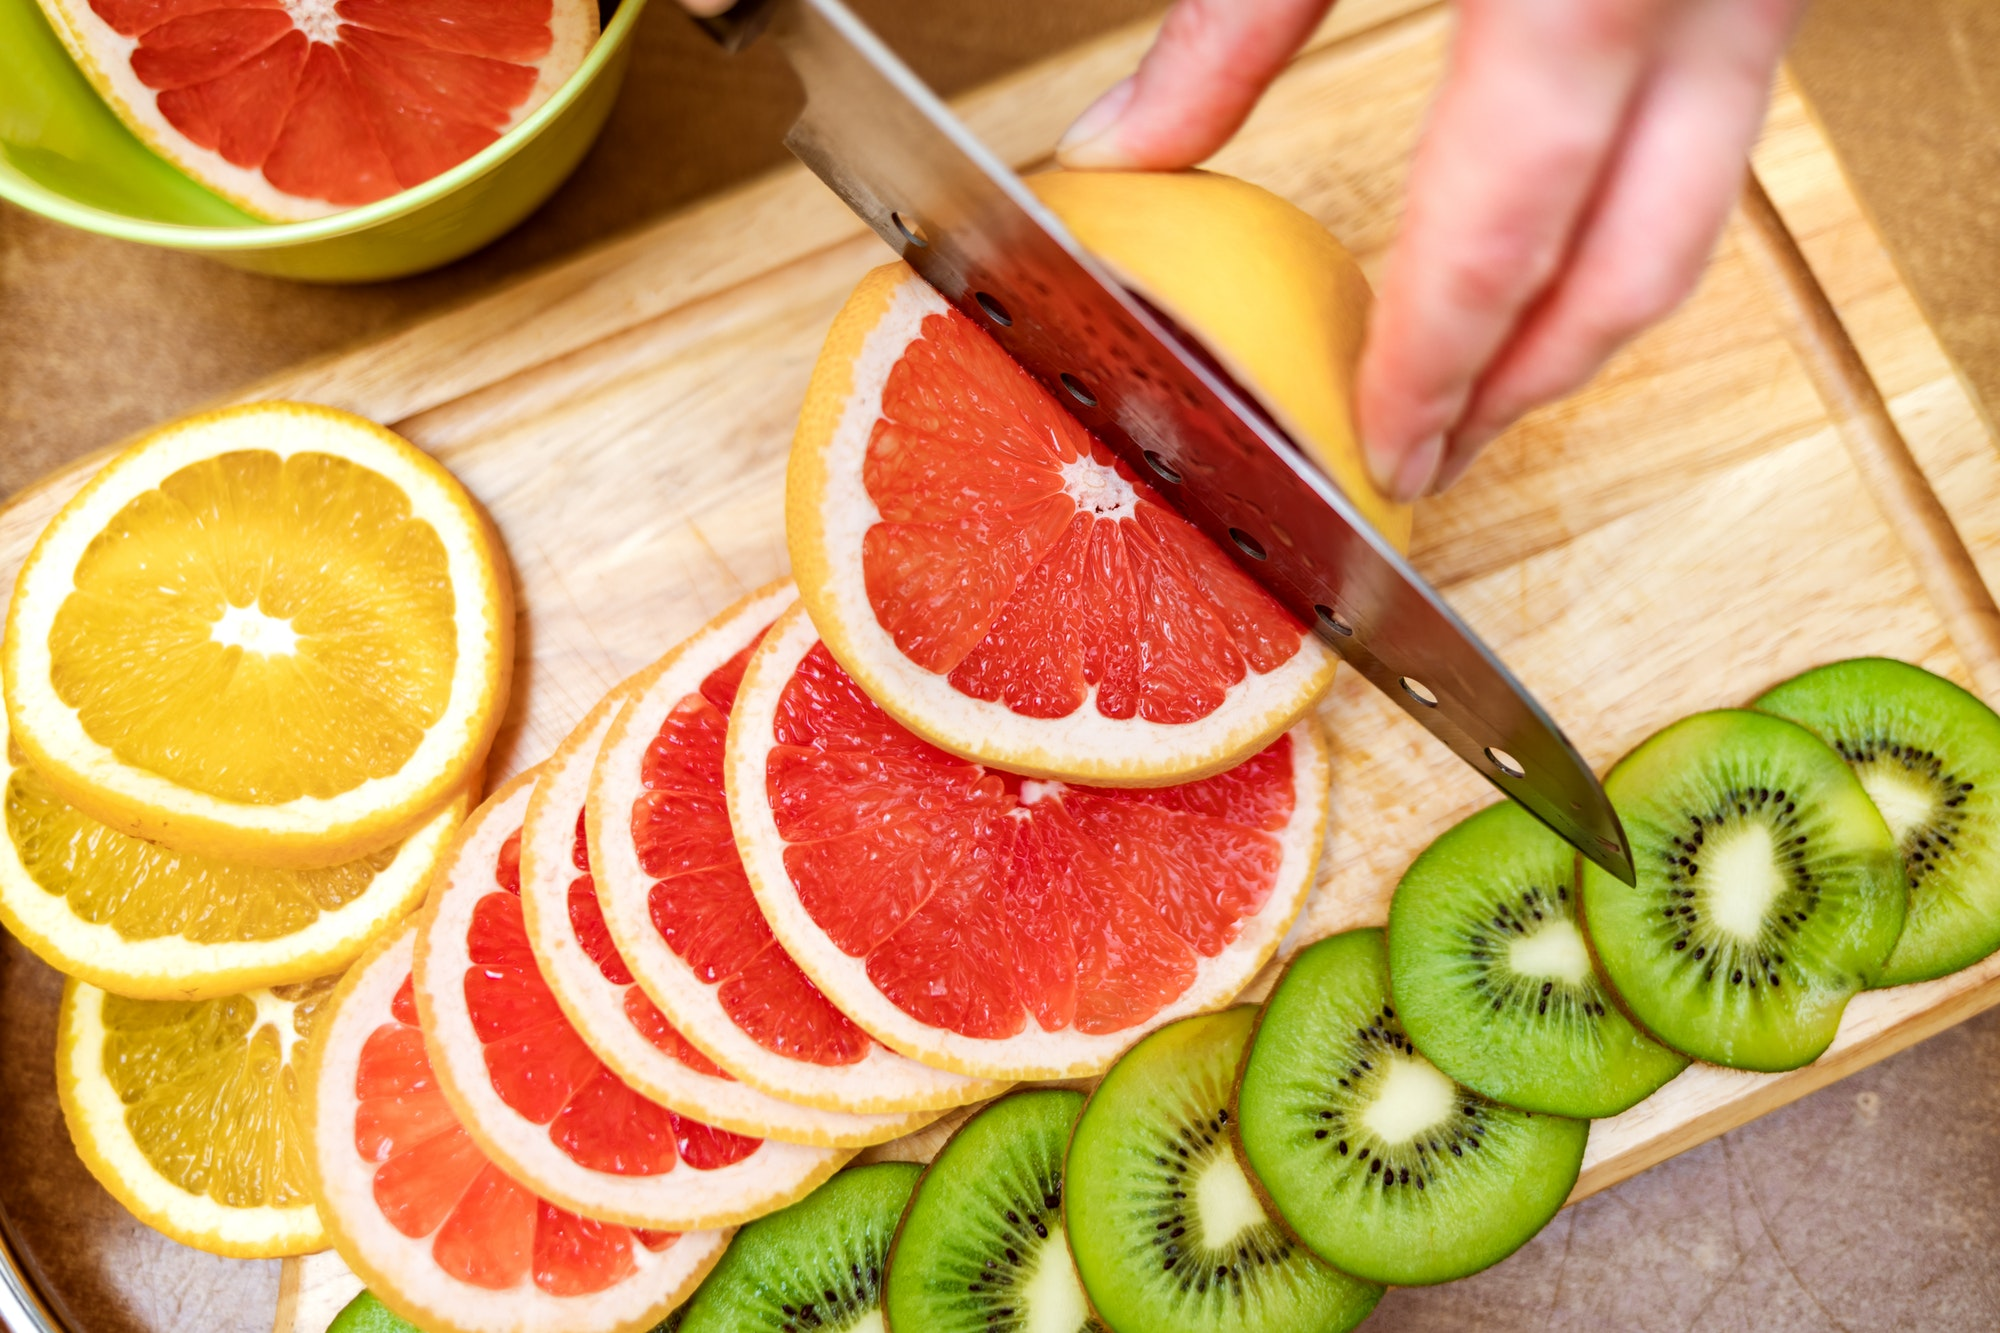 using knife to slice fruits